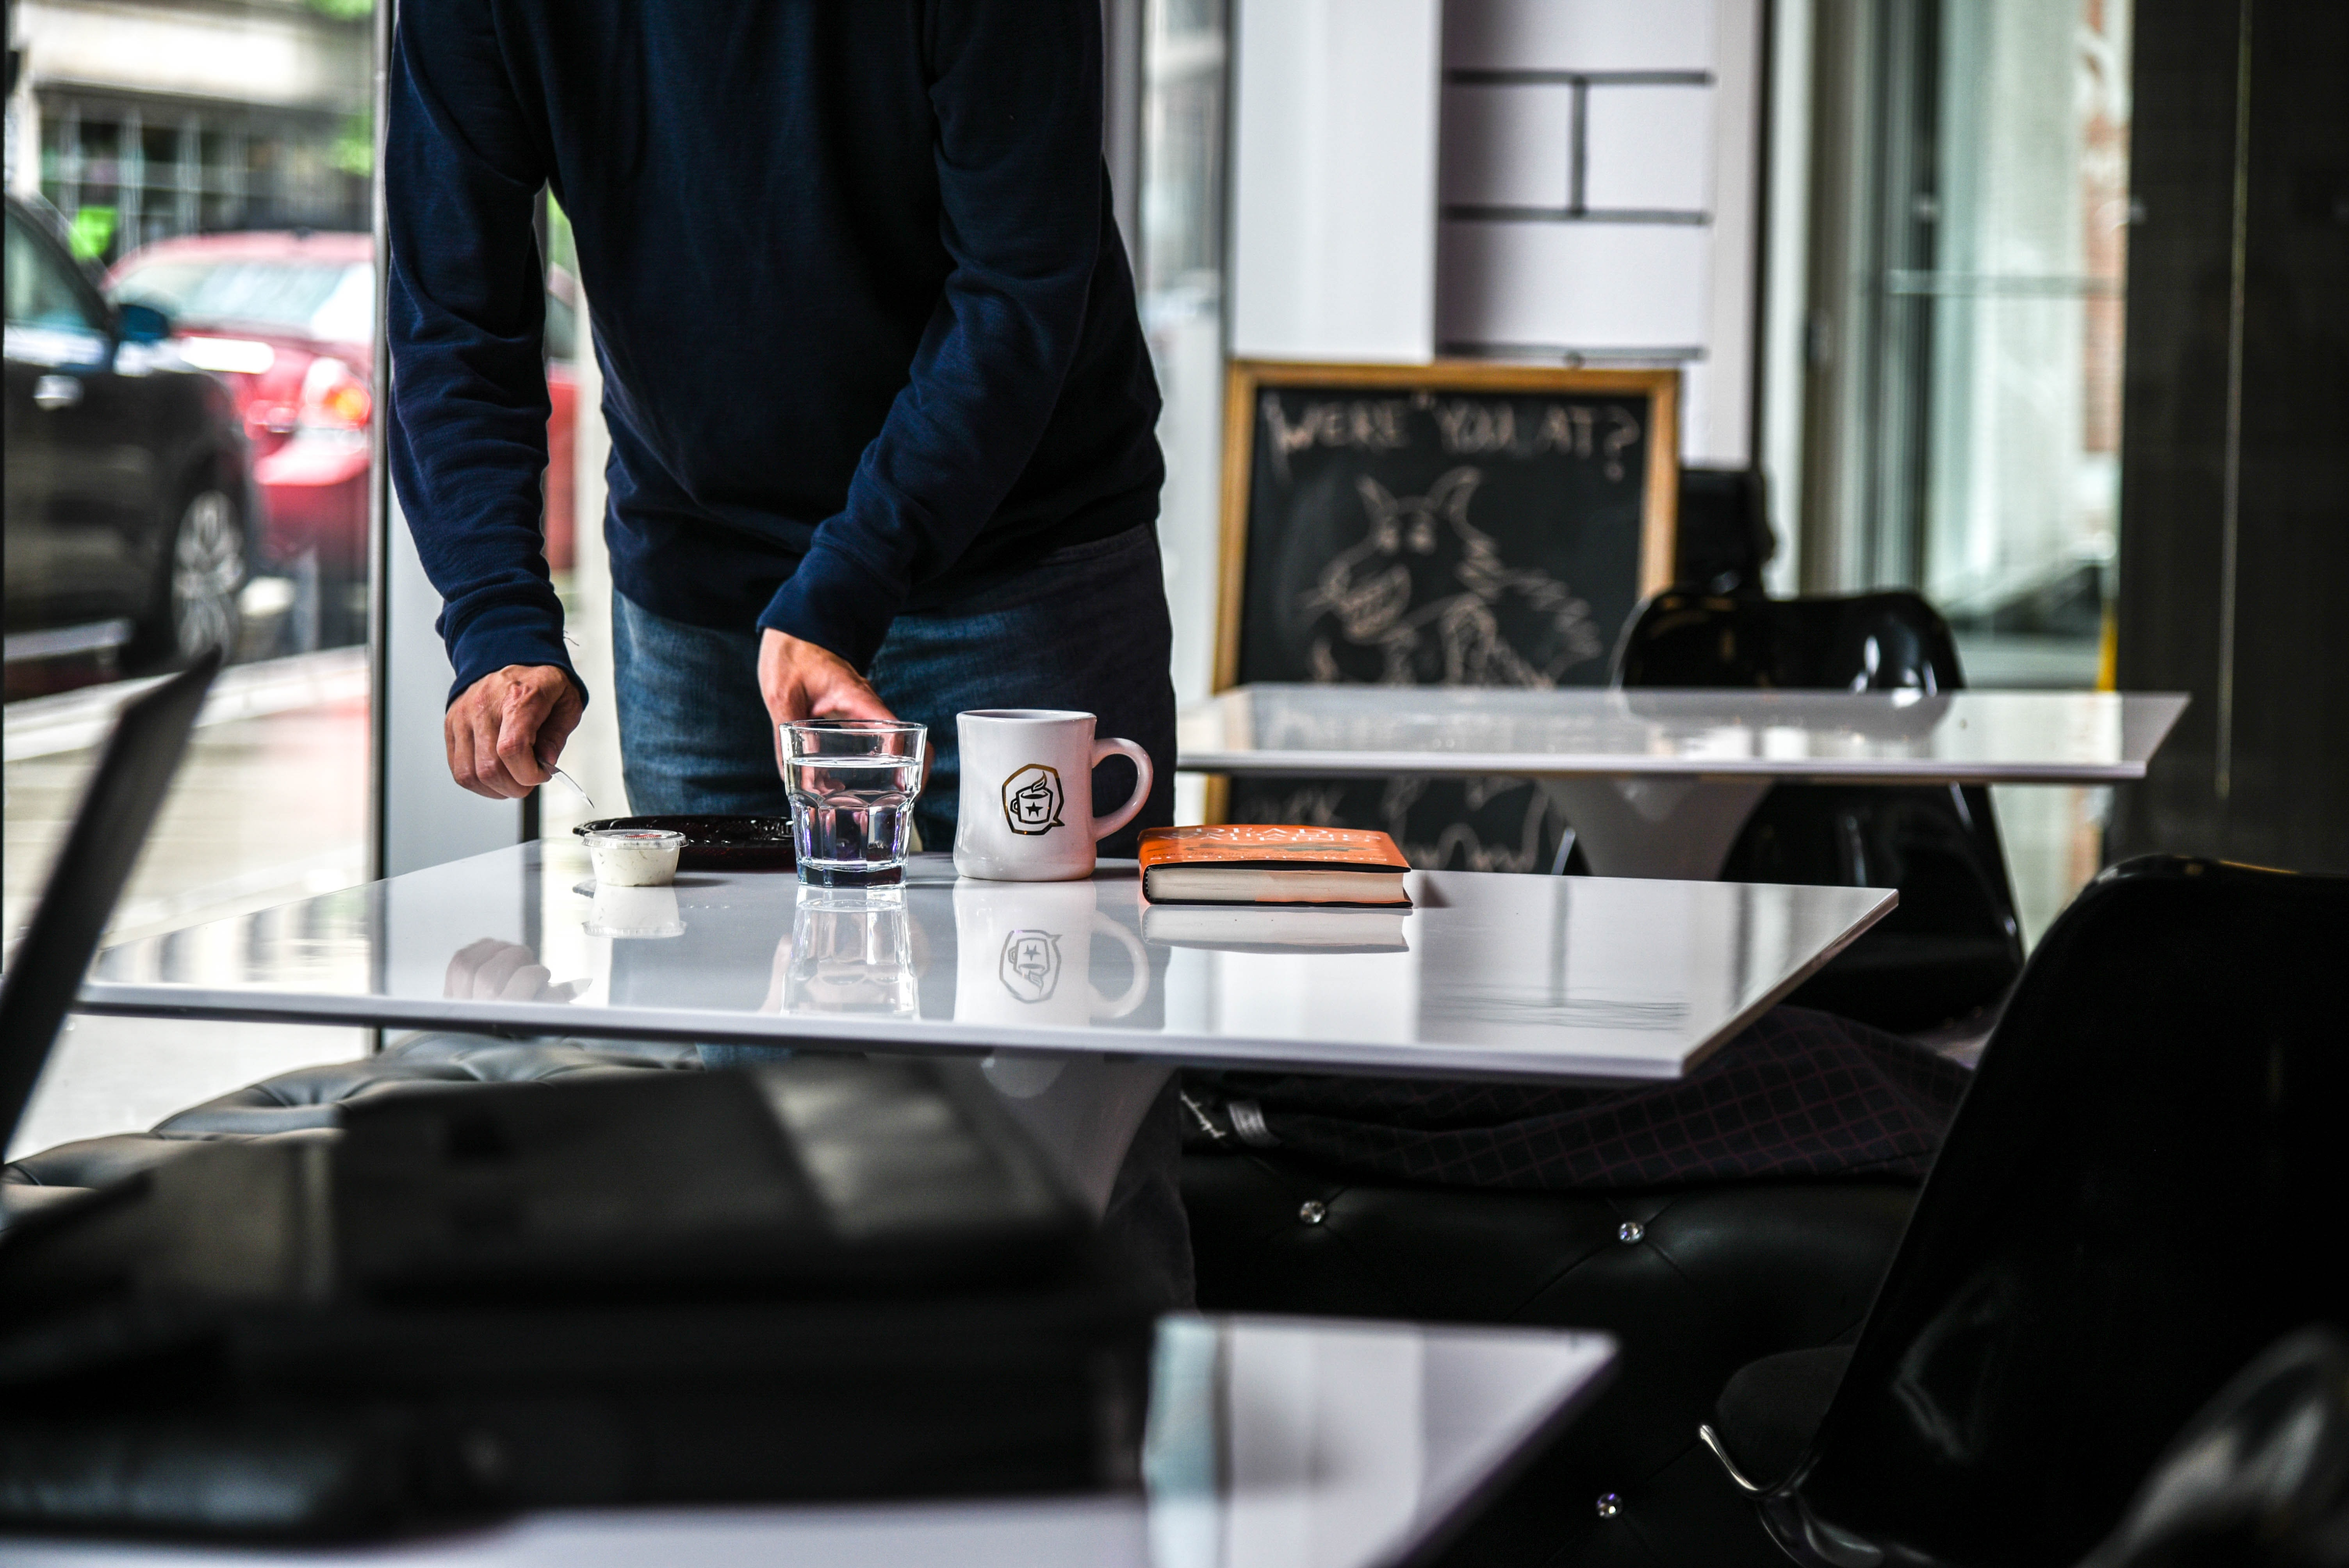 standing person holding glass of water on beside table